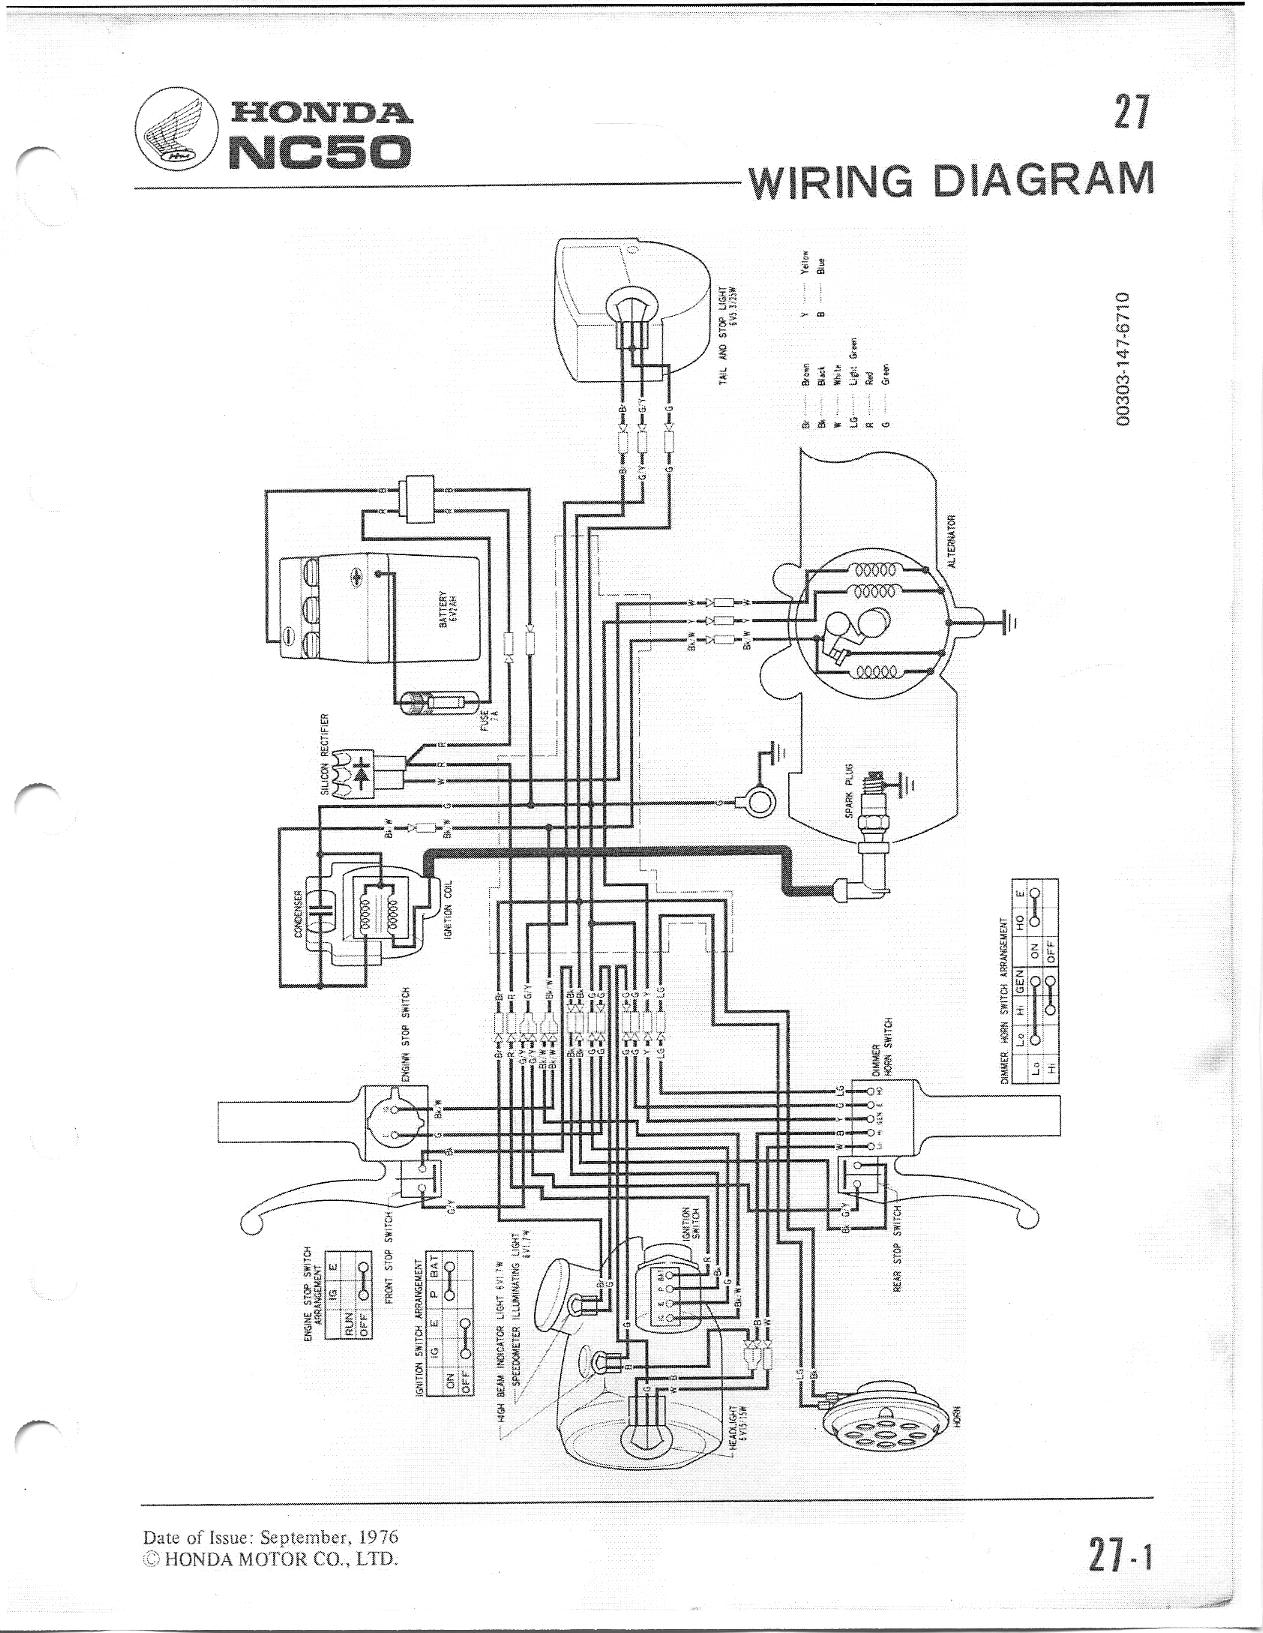 Re Nc50 Wiring Diagram